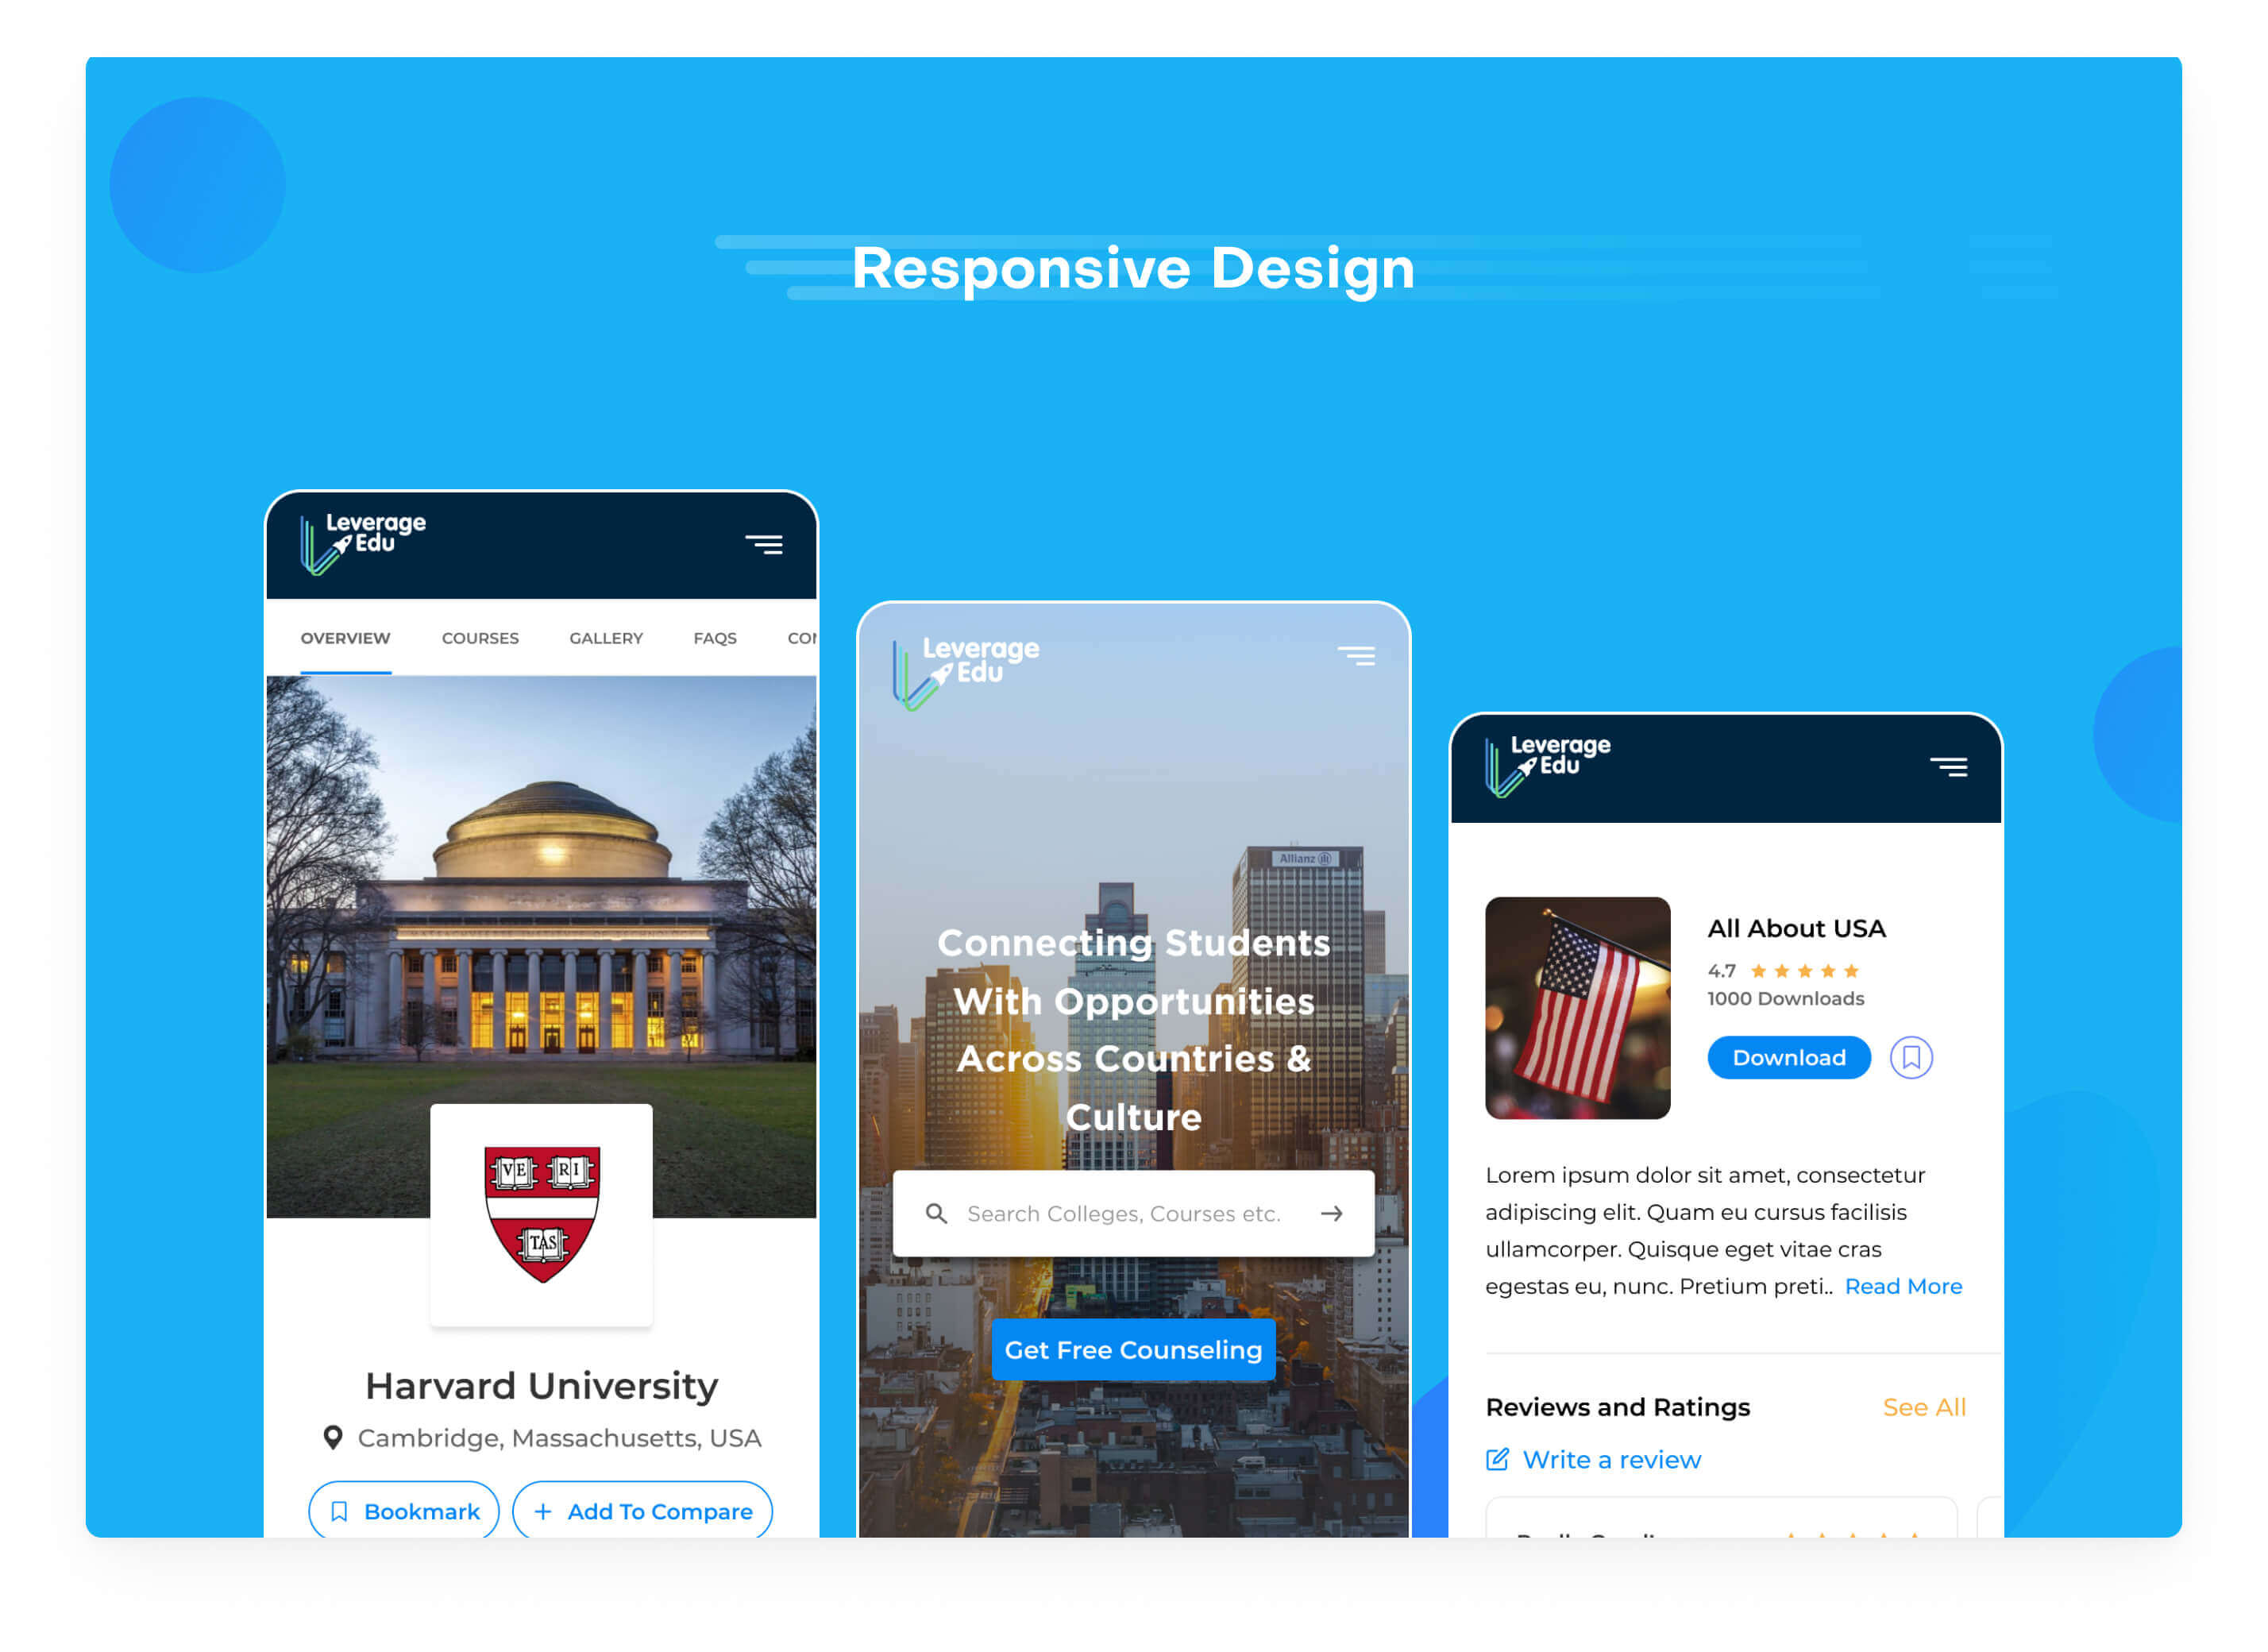 responsive-design-leverage-edu